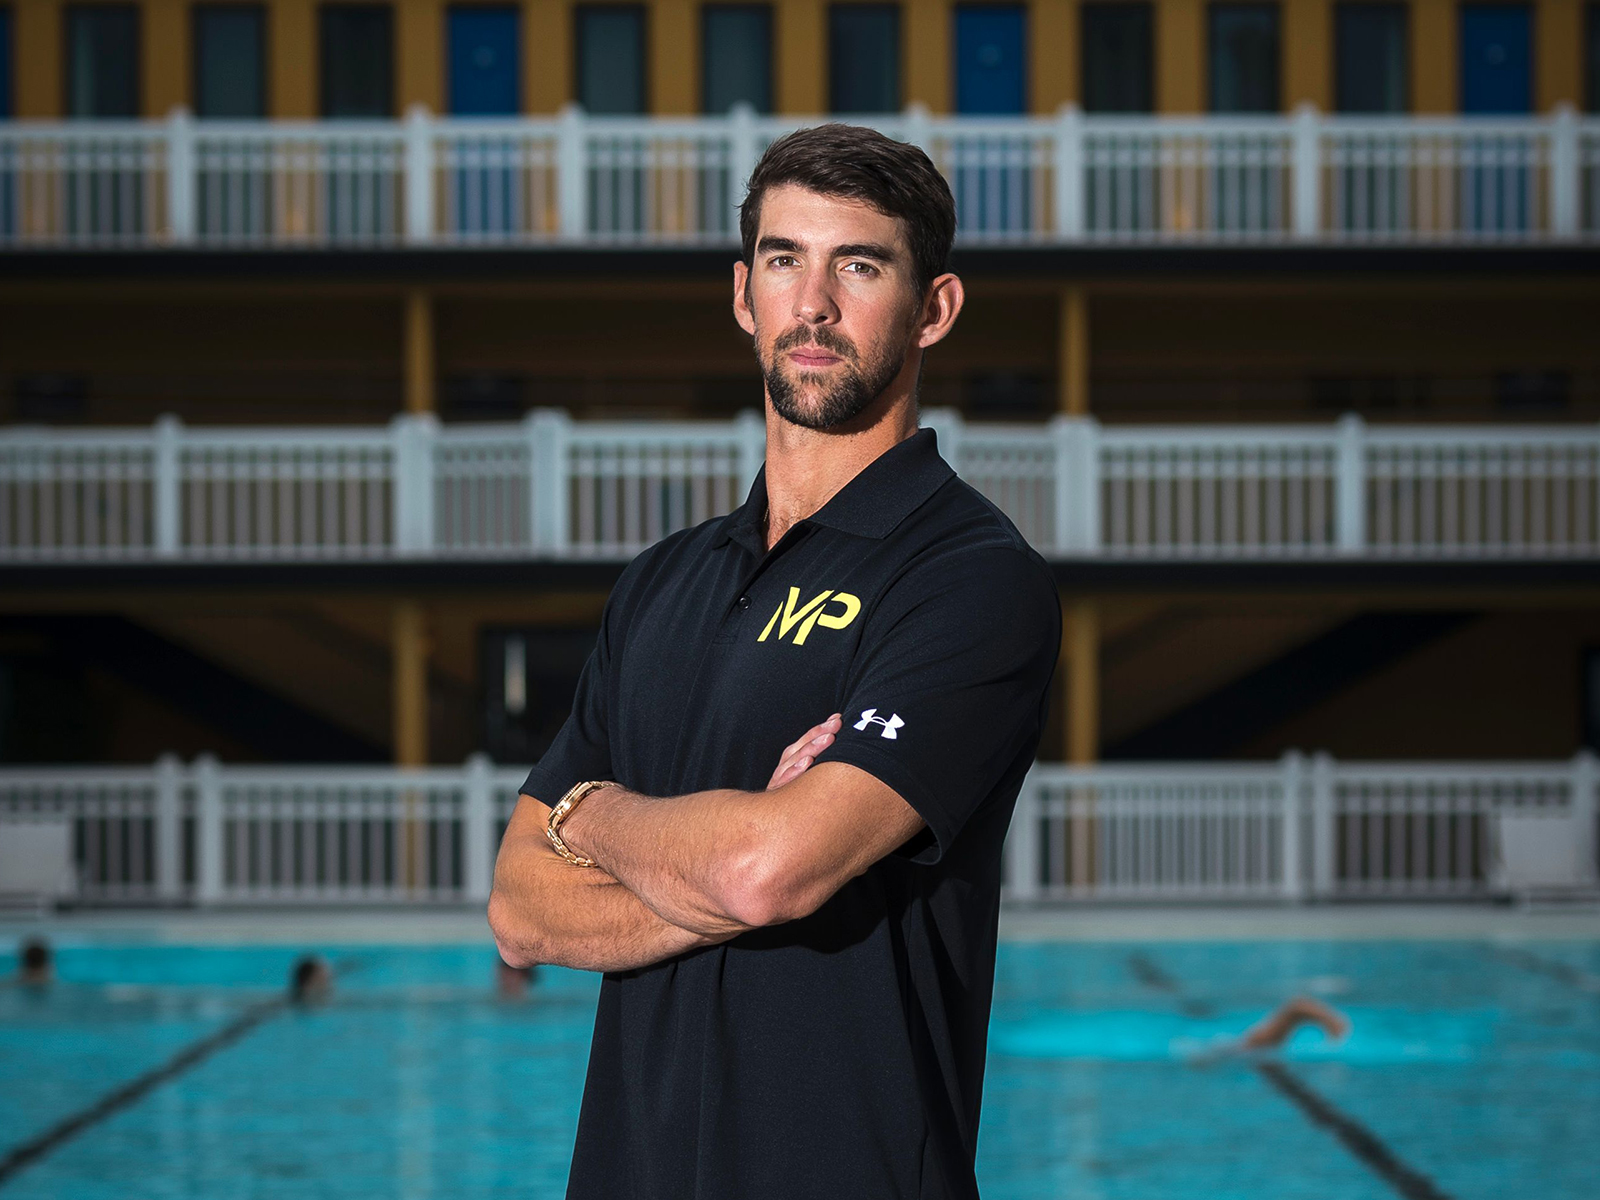 Michael Phelps Reveals What It's Really Like to Eat in the Olympic Village